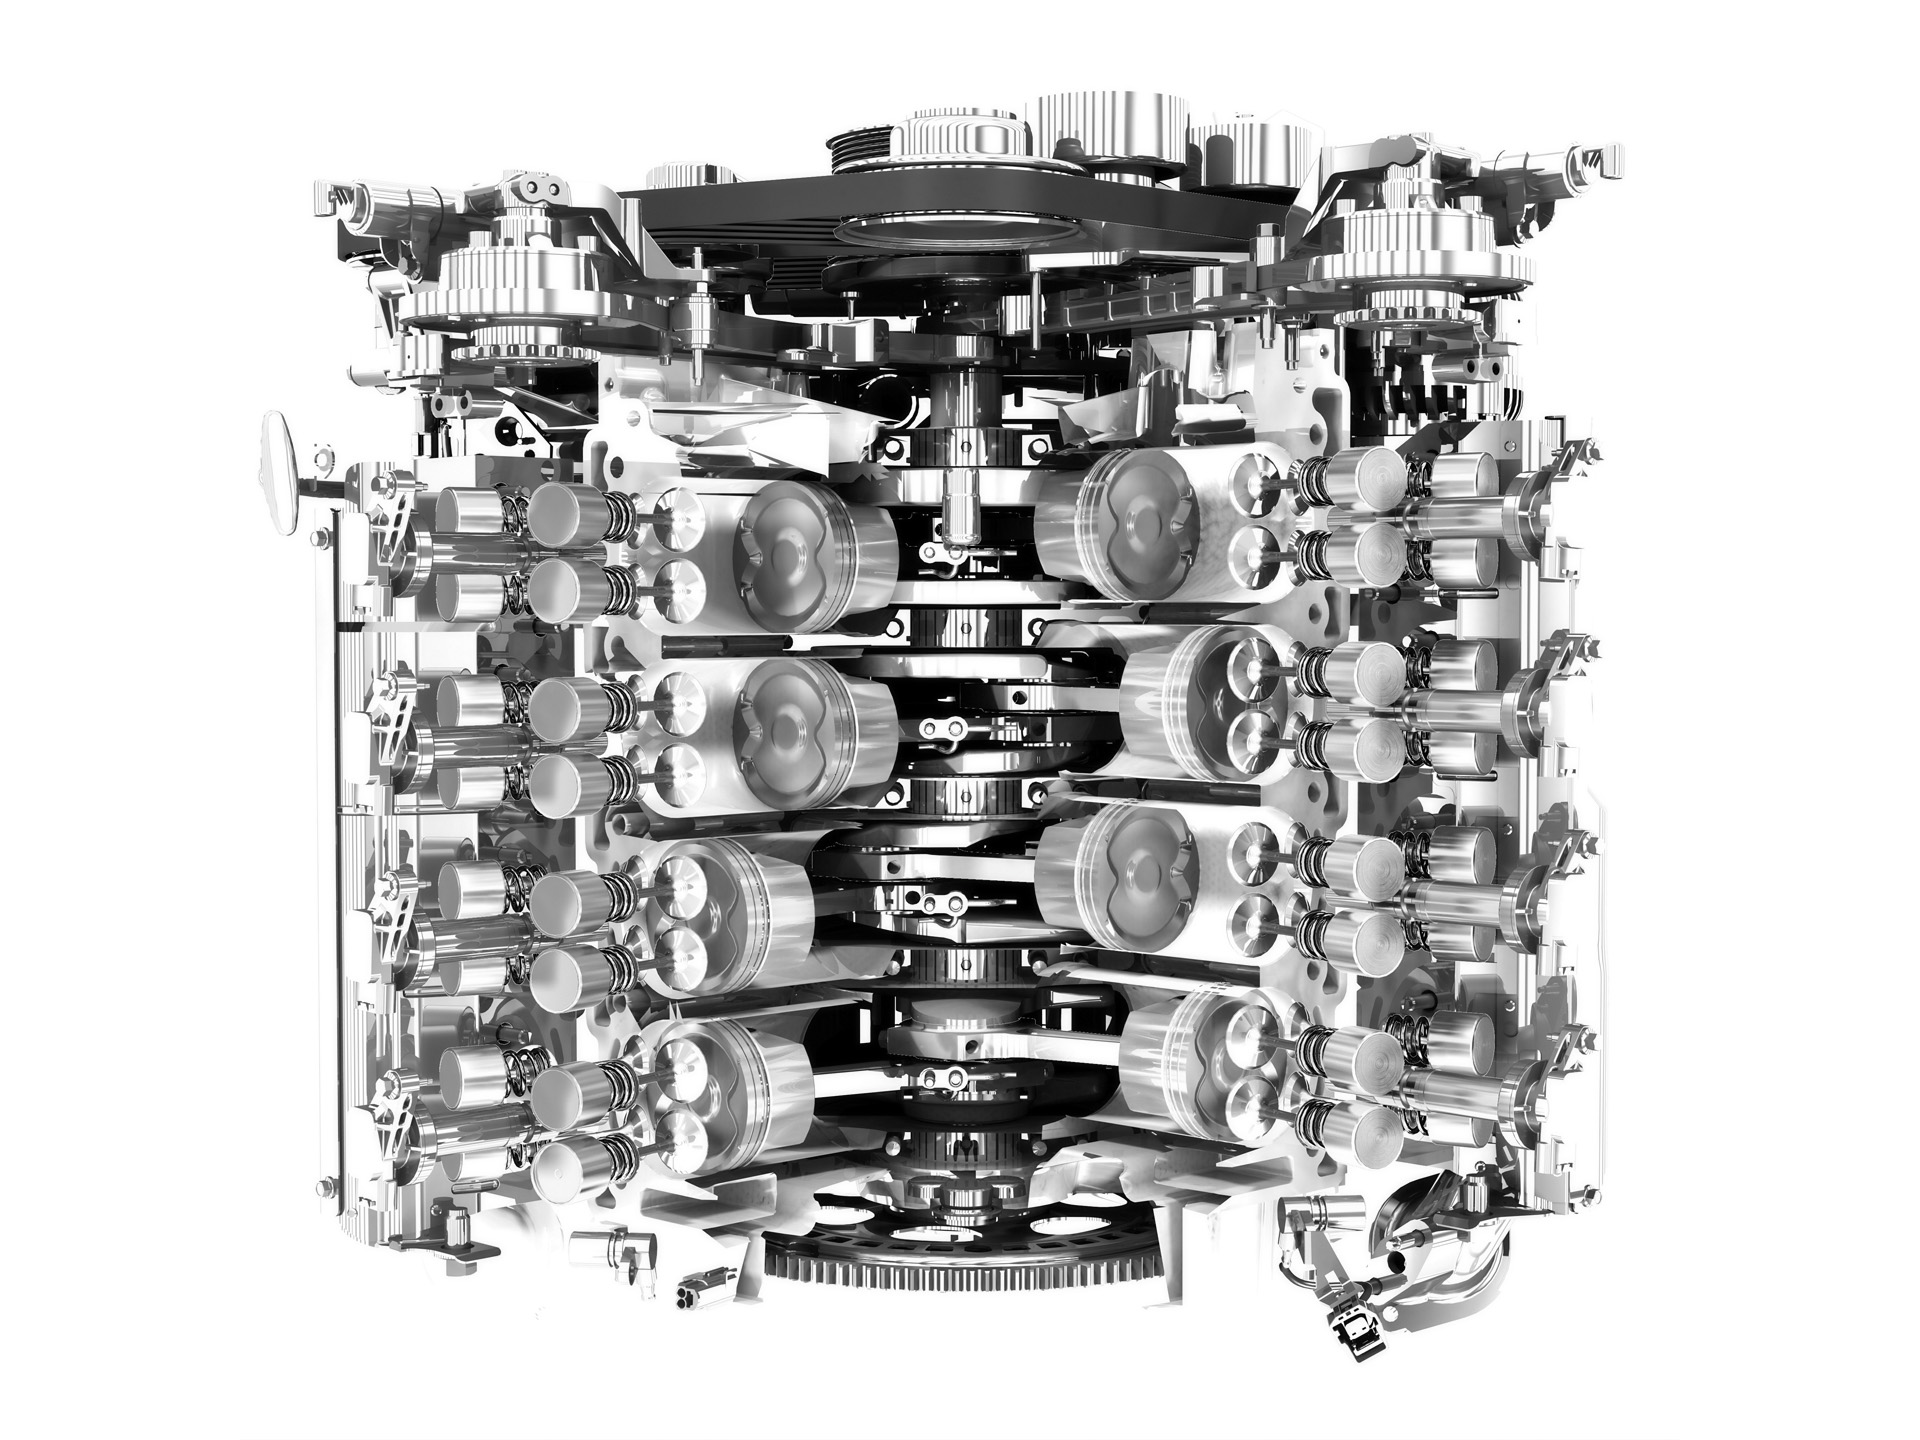 Sample P1826 Engine